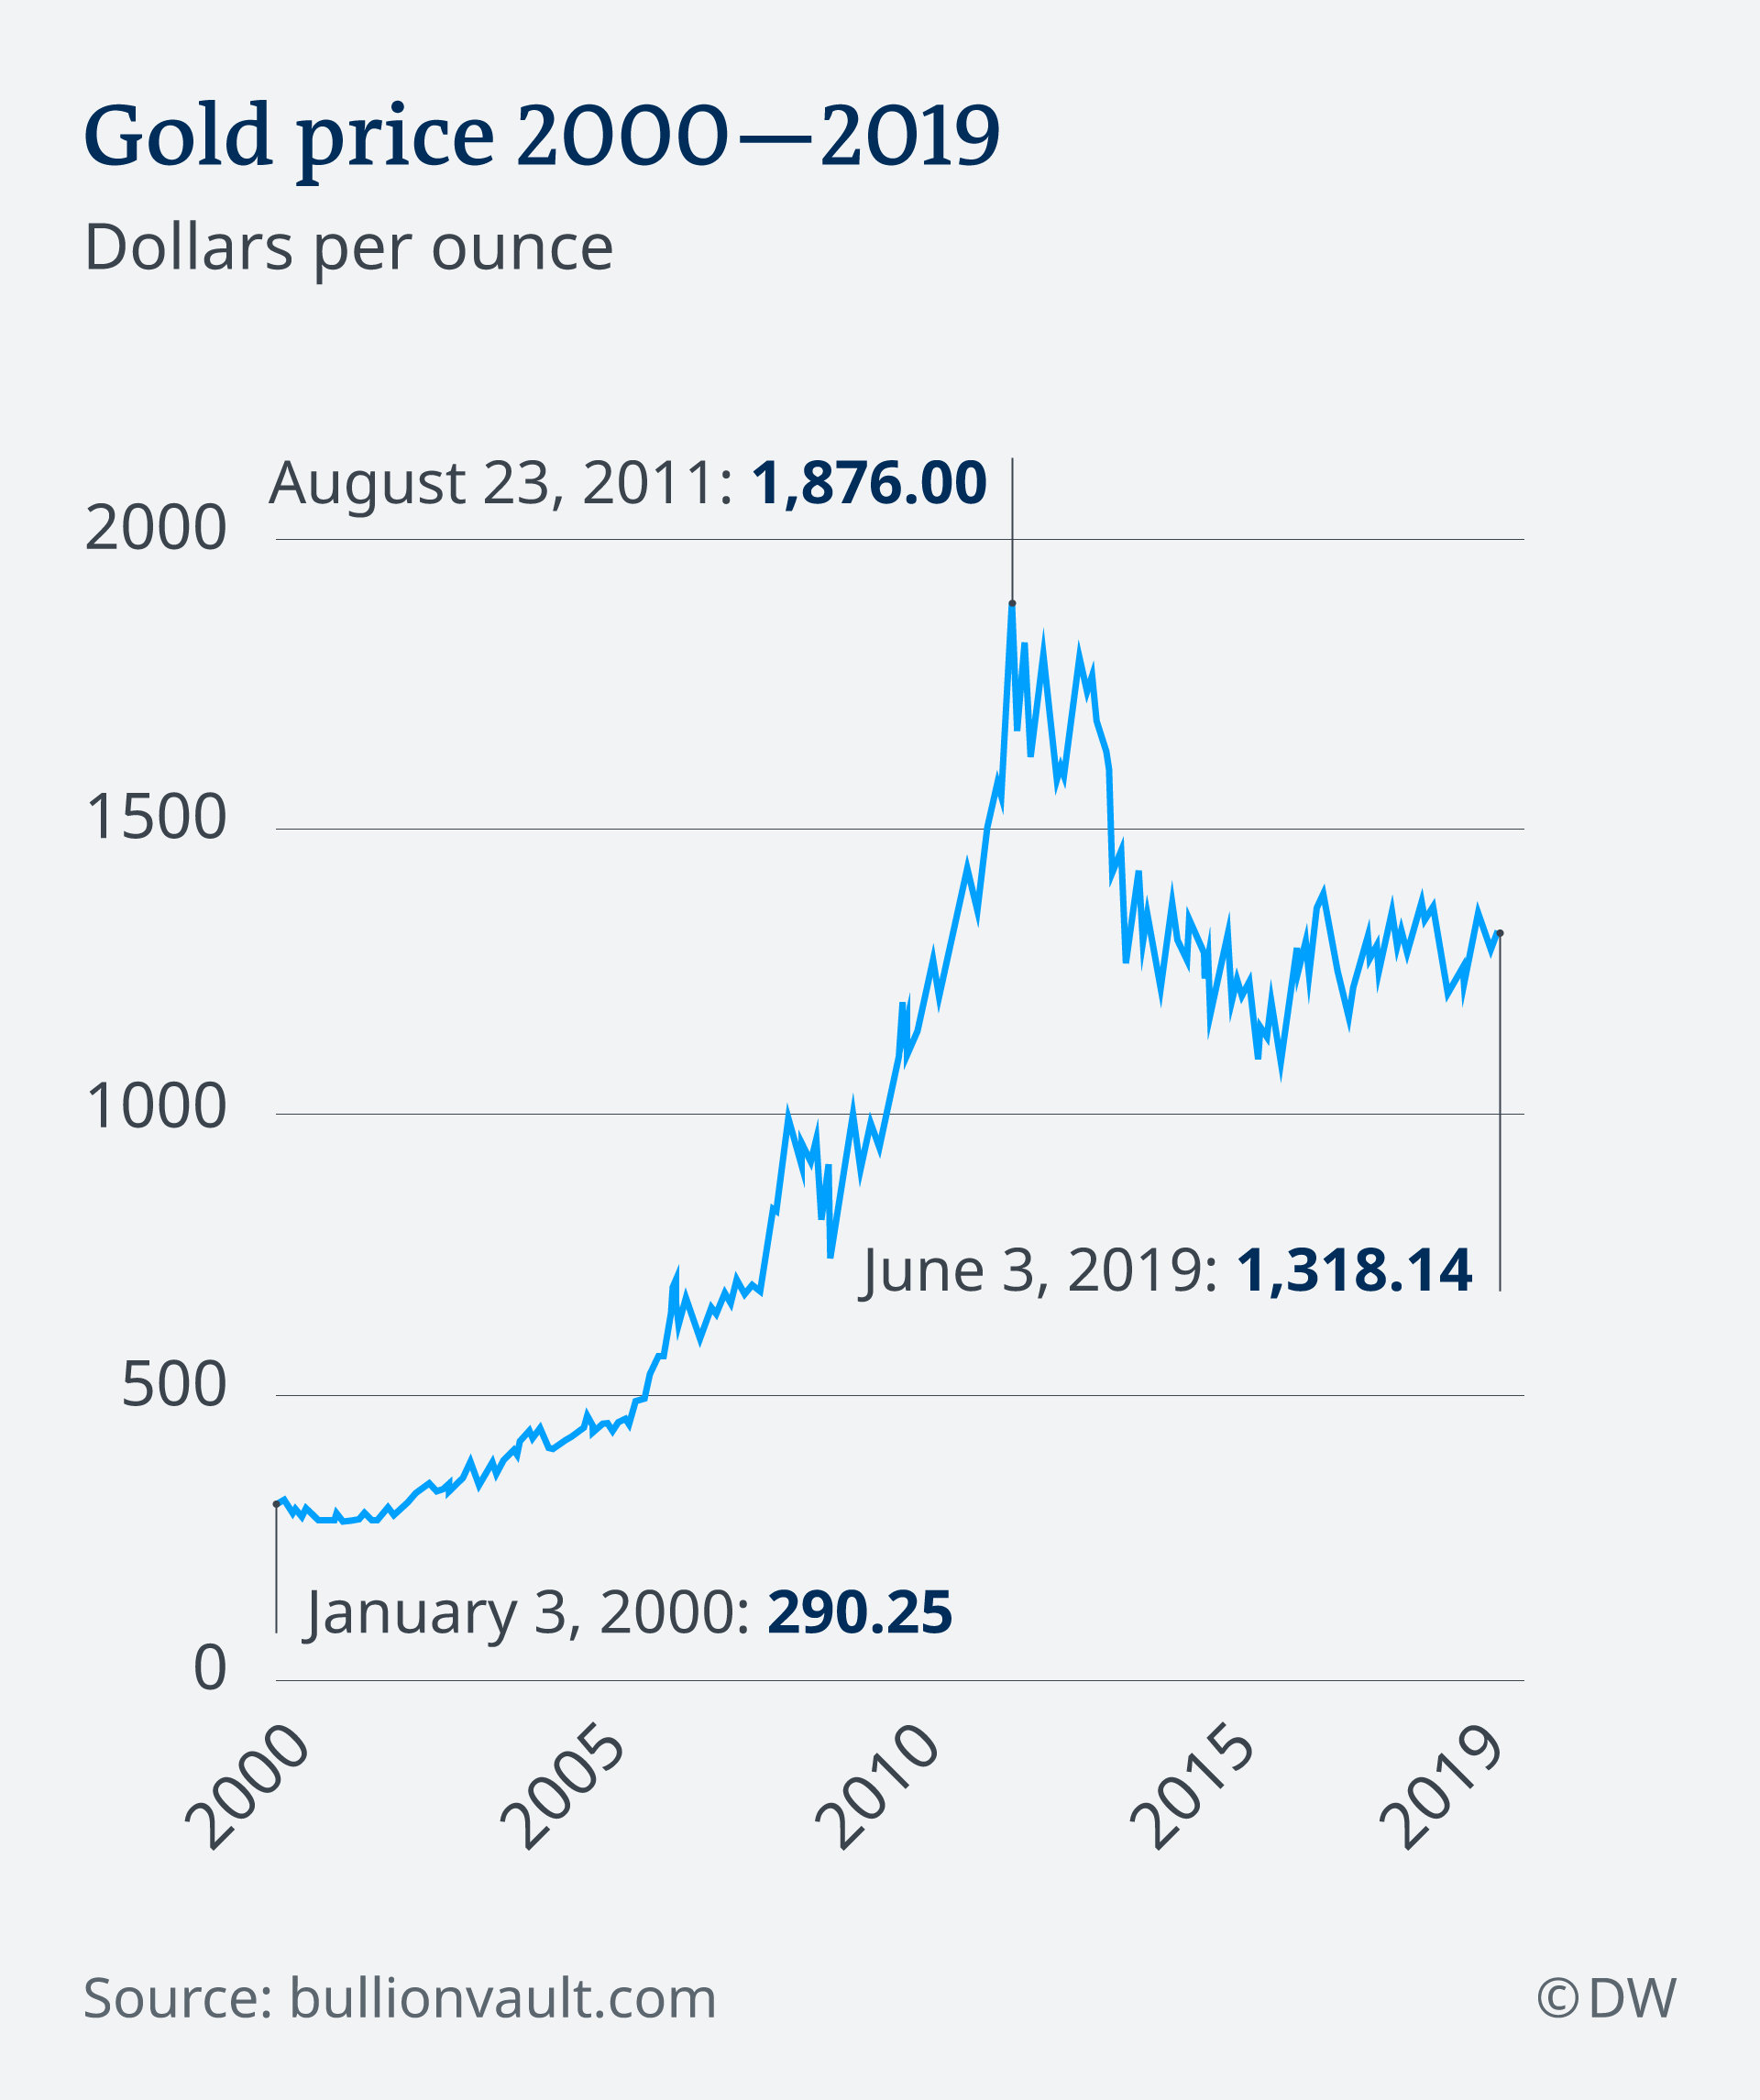 An infographic showing the change in gold prices between 2000 and 2019